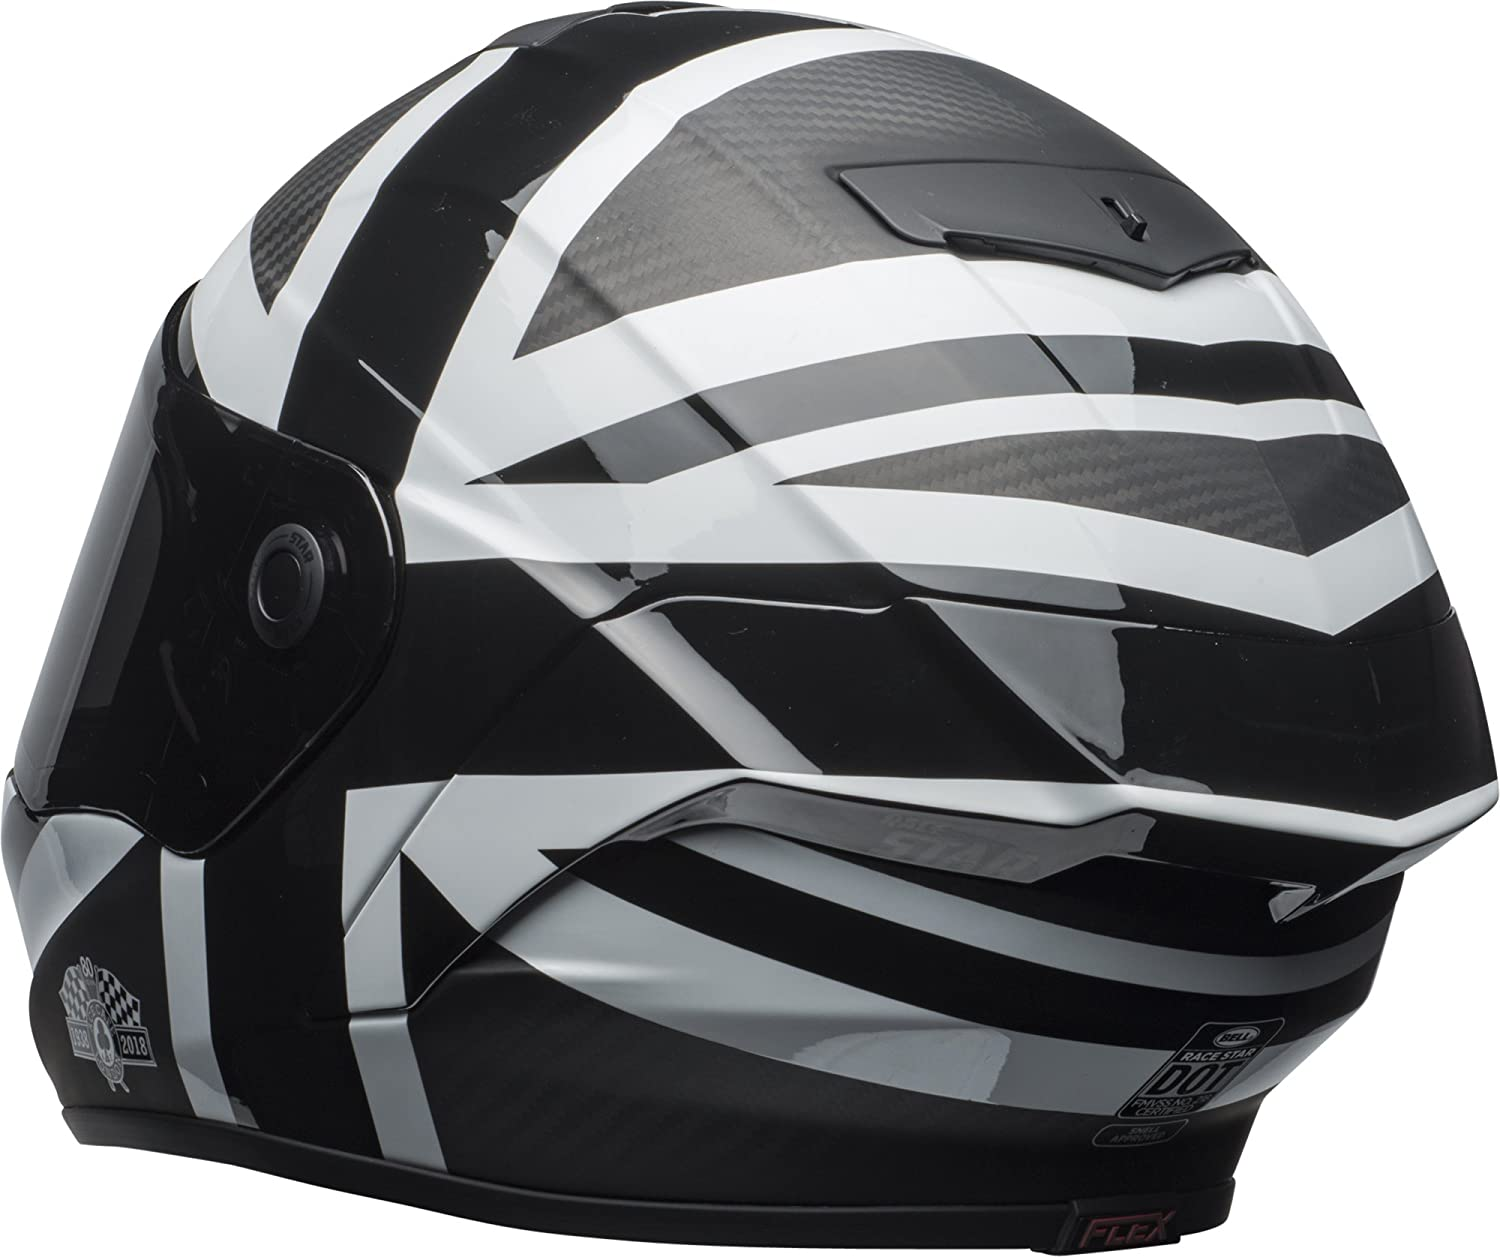 Amazon.com: Bell Race Star Full-Face Motorcycle Helmet (Ace Cafe Blackjack Matte Black/White, Large): Automotive